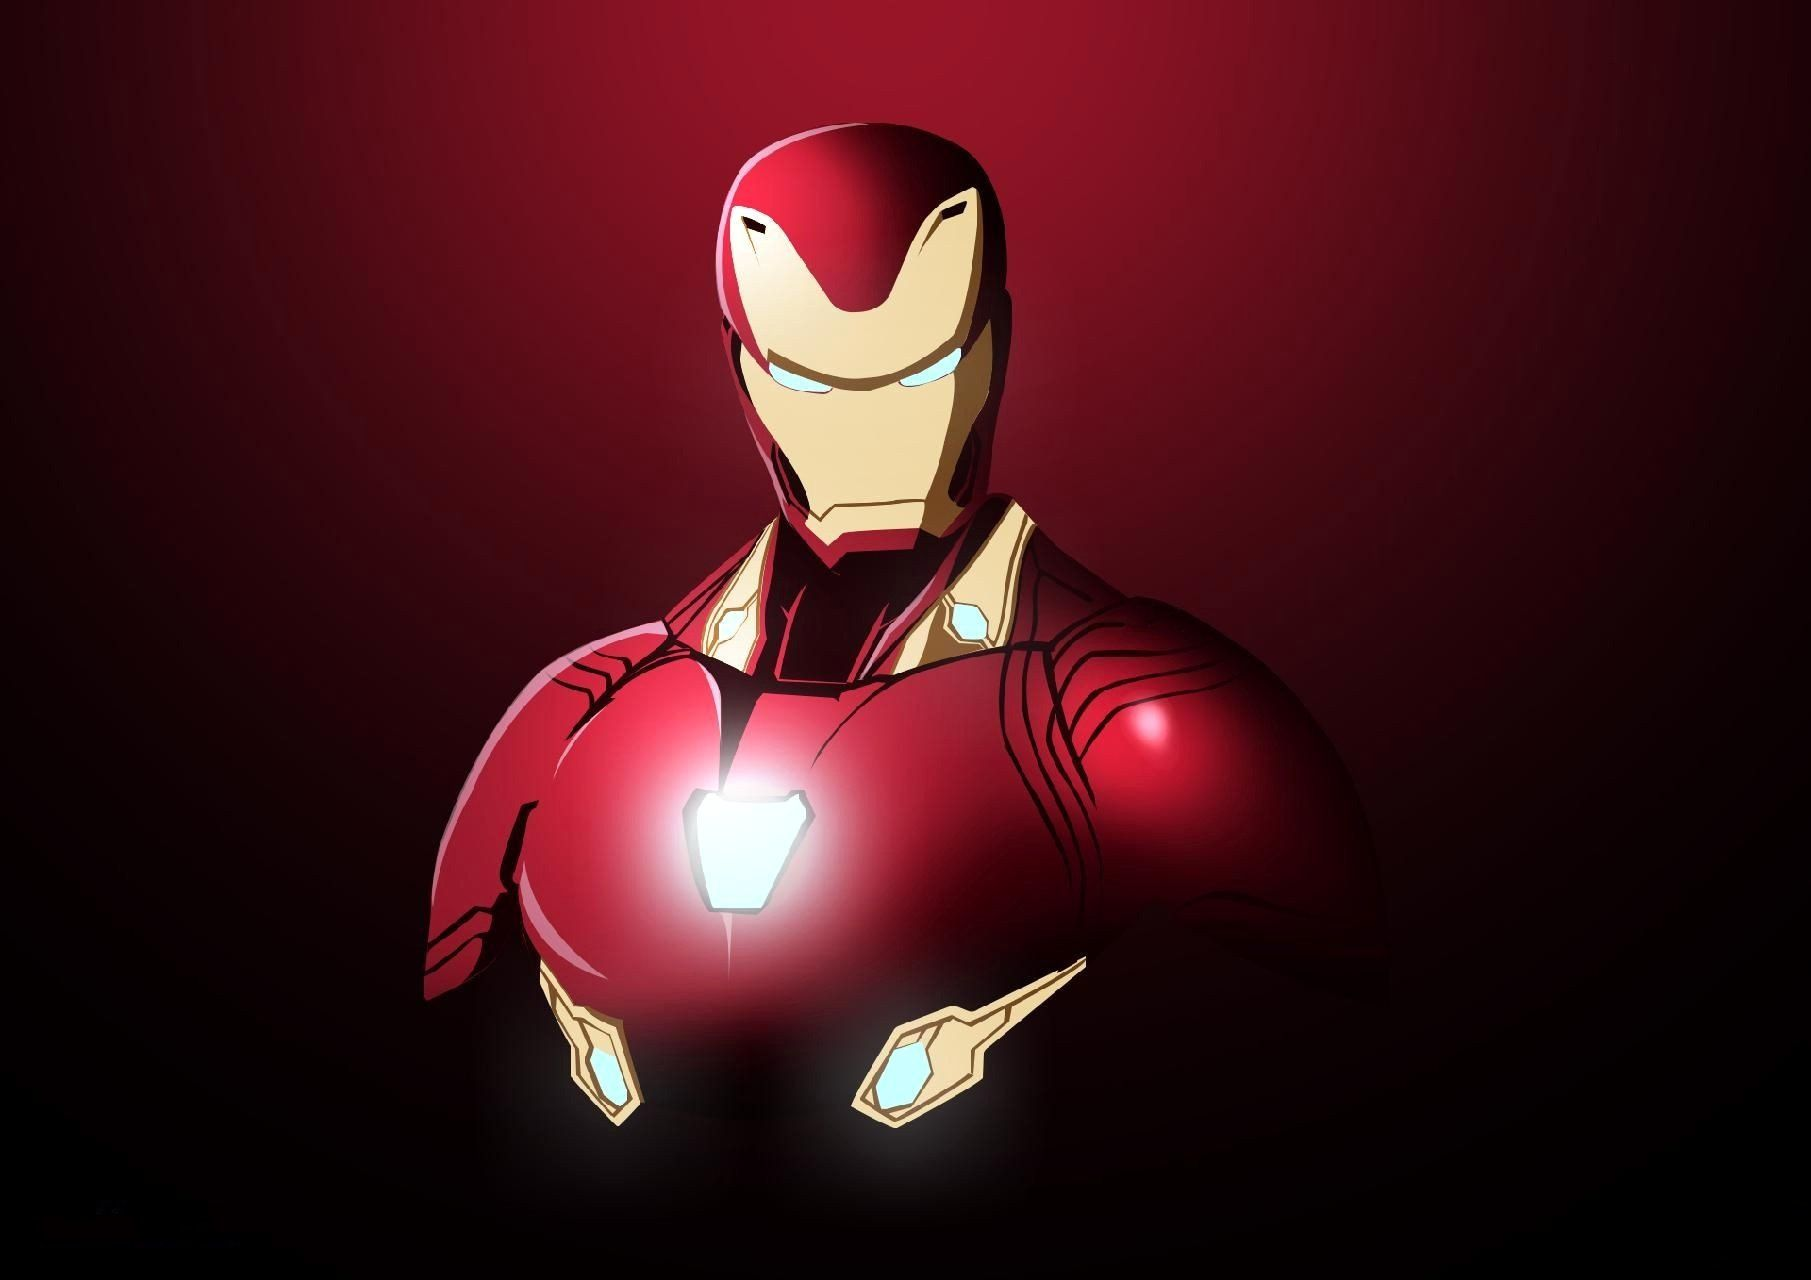 Iron Man 4k Wallpaper Unique Elegant Game Wallpaper Cartoon Superhero Wallpaper Hd Iron Man Wallpaper Superhero Wallpaper